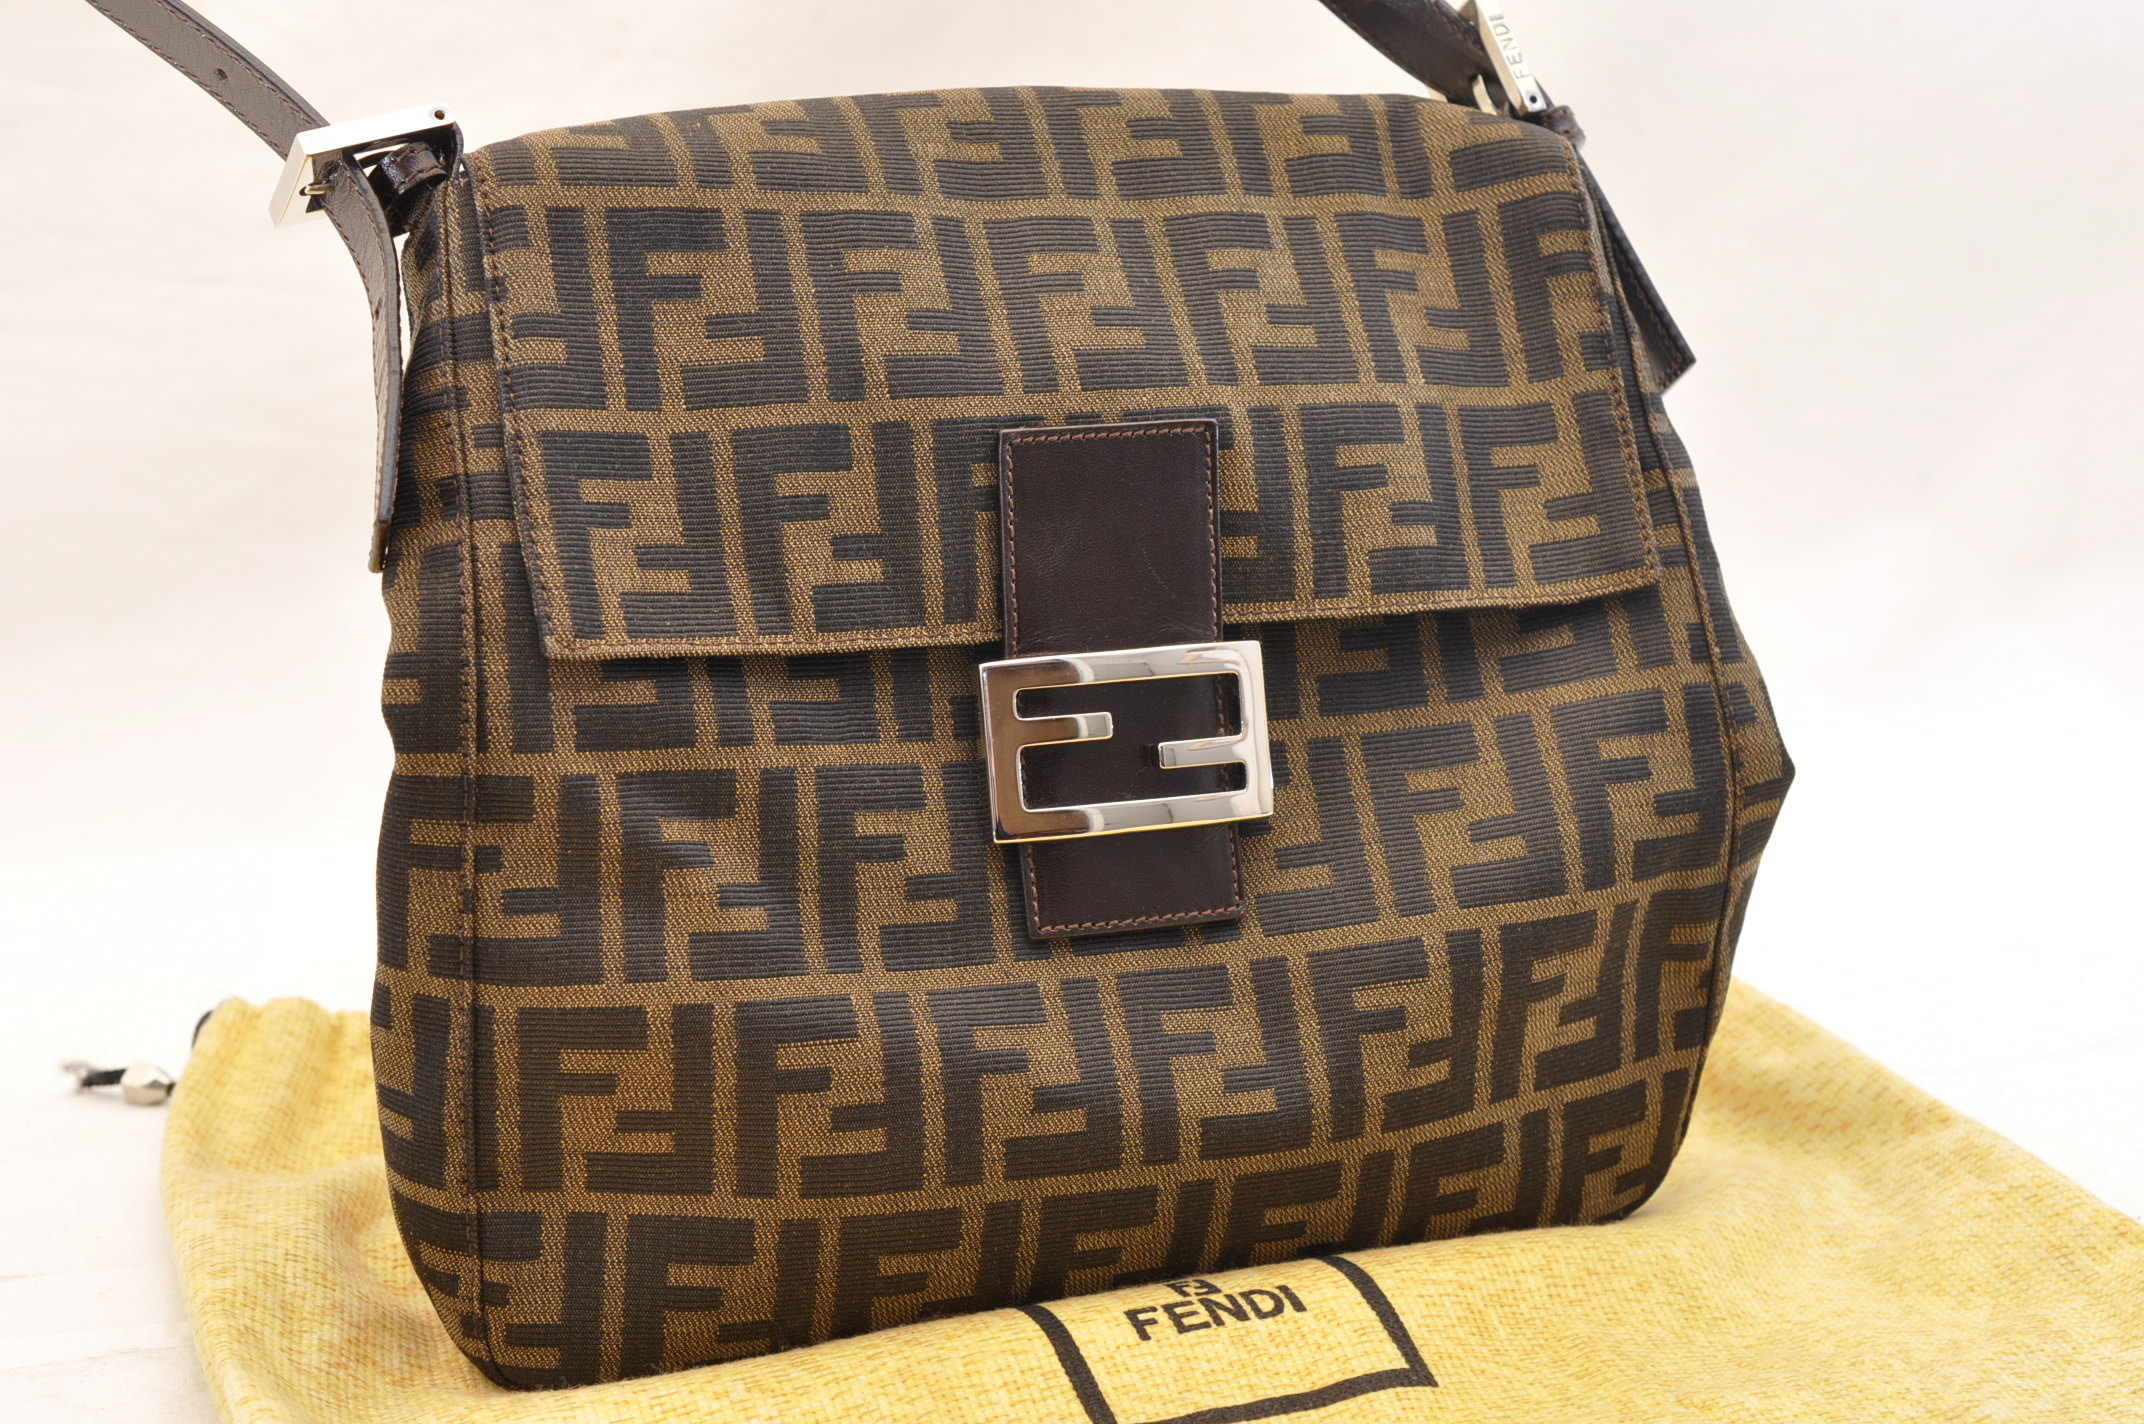 d2b01109669c FENDI Zucca Canvas Mamma Baguette Shoulder Bag Brown Black Auth sa1424.  DSC0232-6.jpg ...